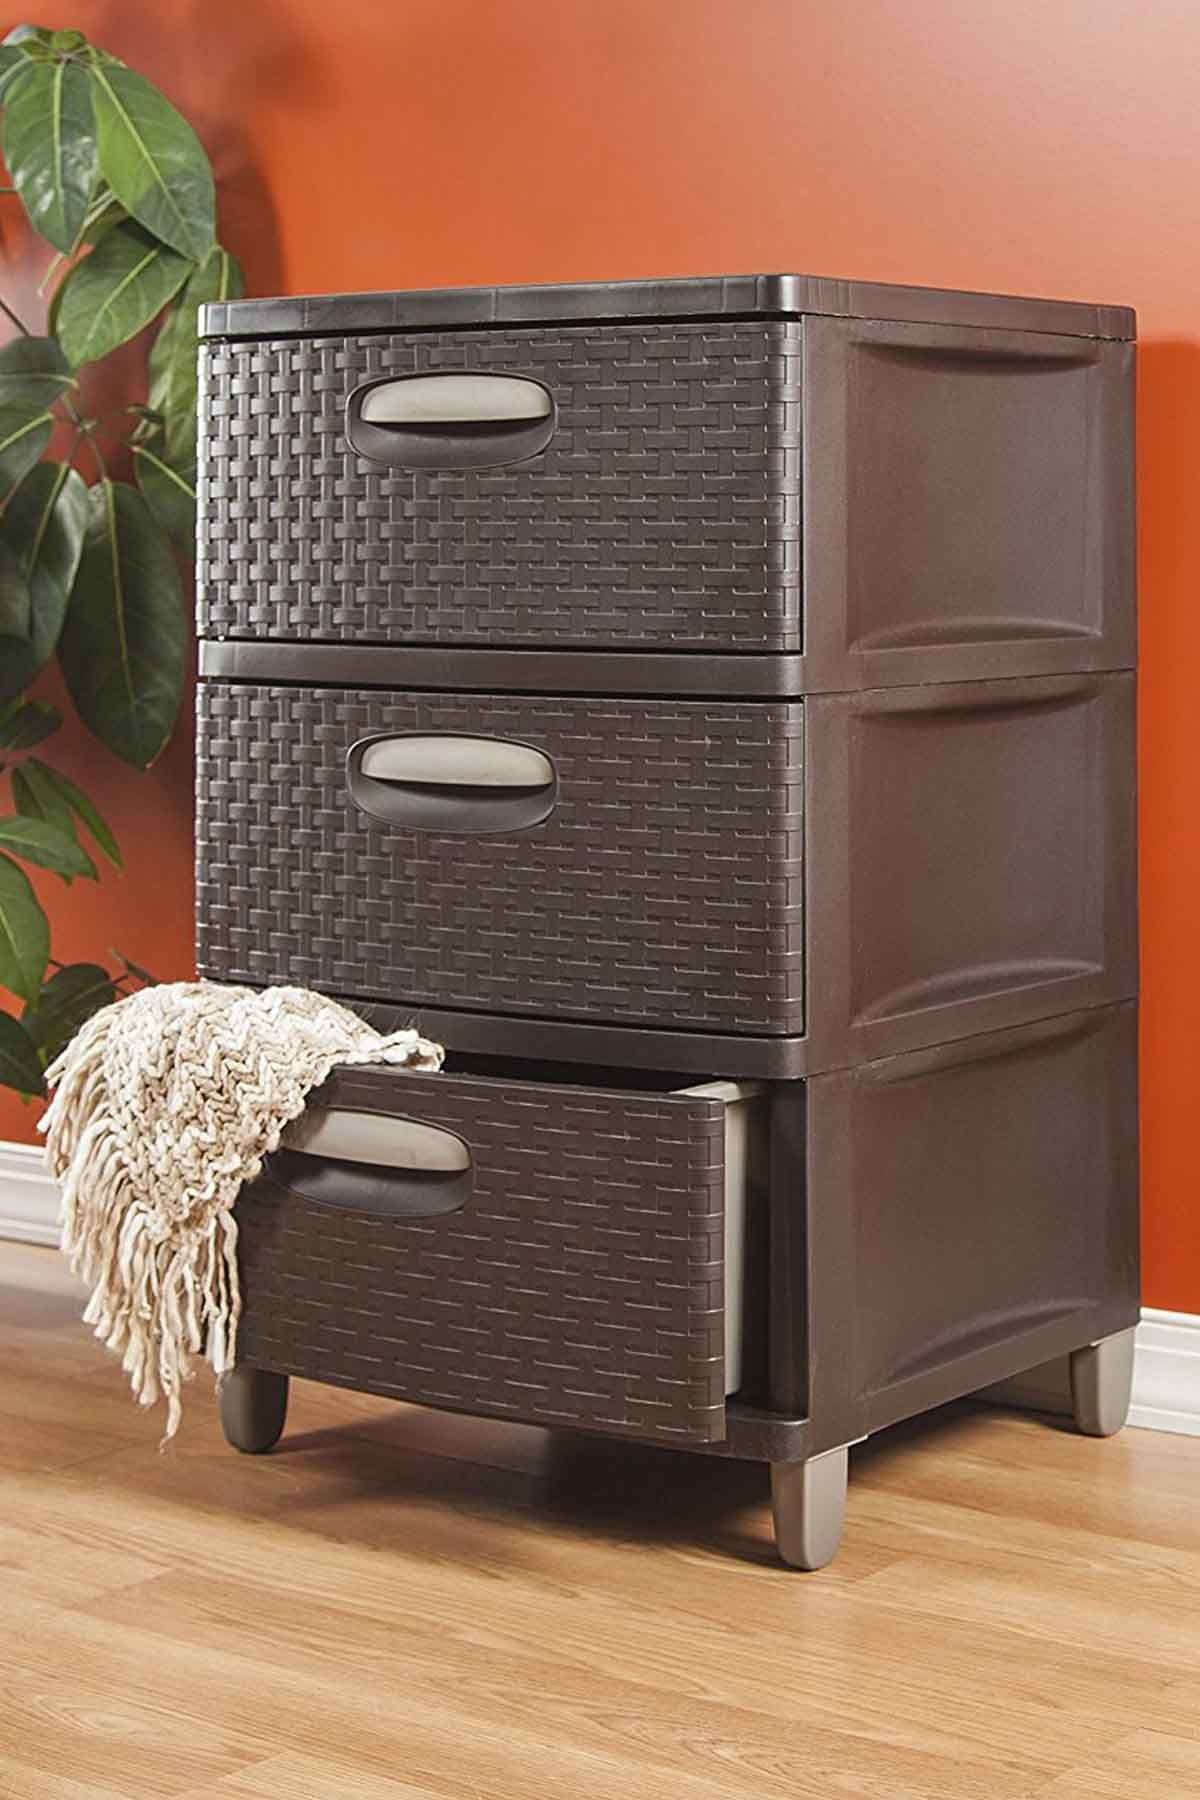 onels filing uk sale portable with drawer wheels for shelves on use red drawers plastic file metal storage home cabinets splendid double staples locks office cabinet upright